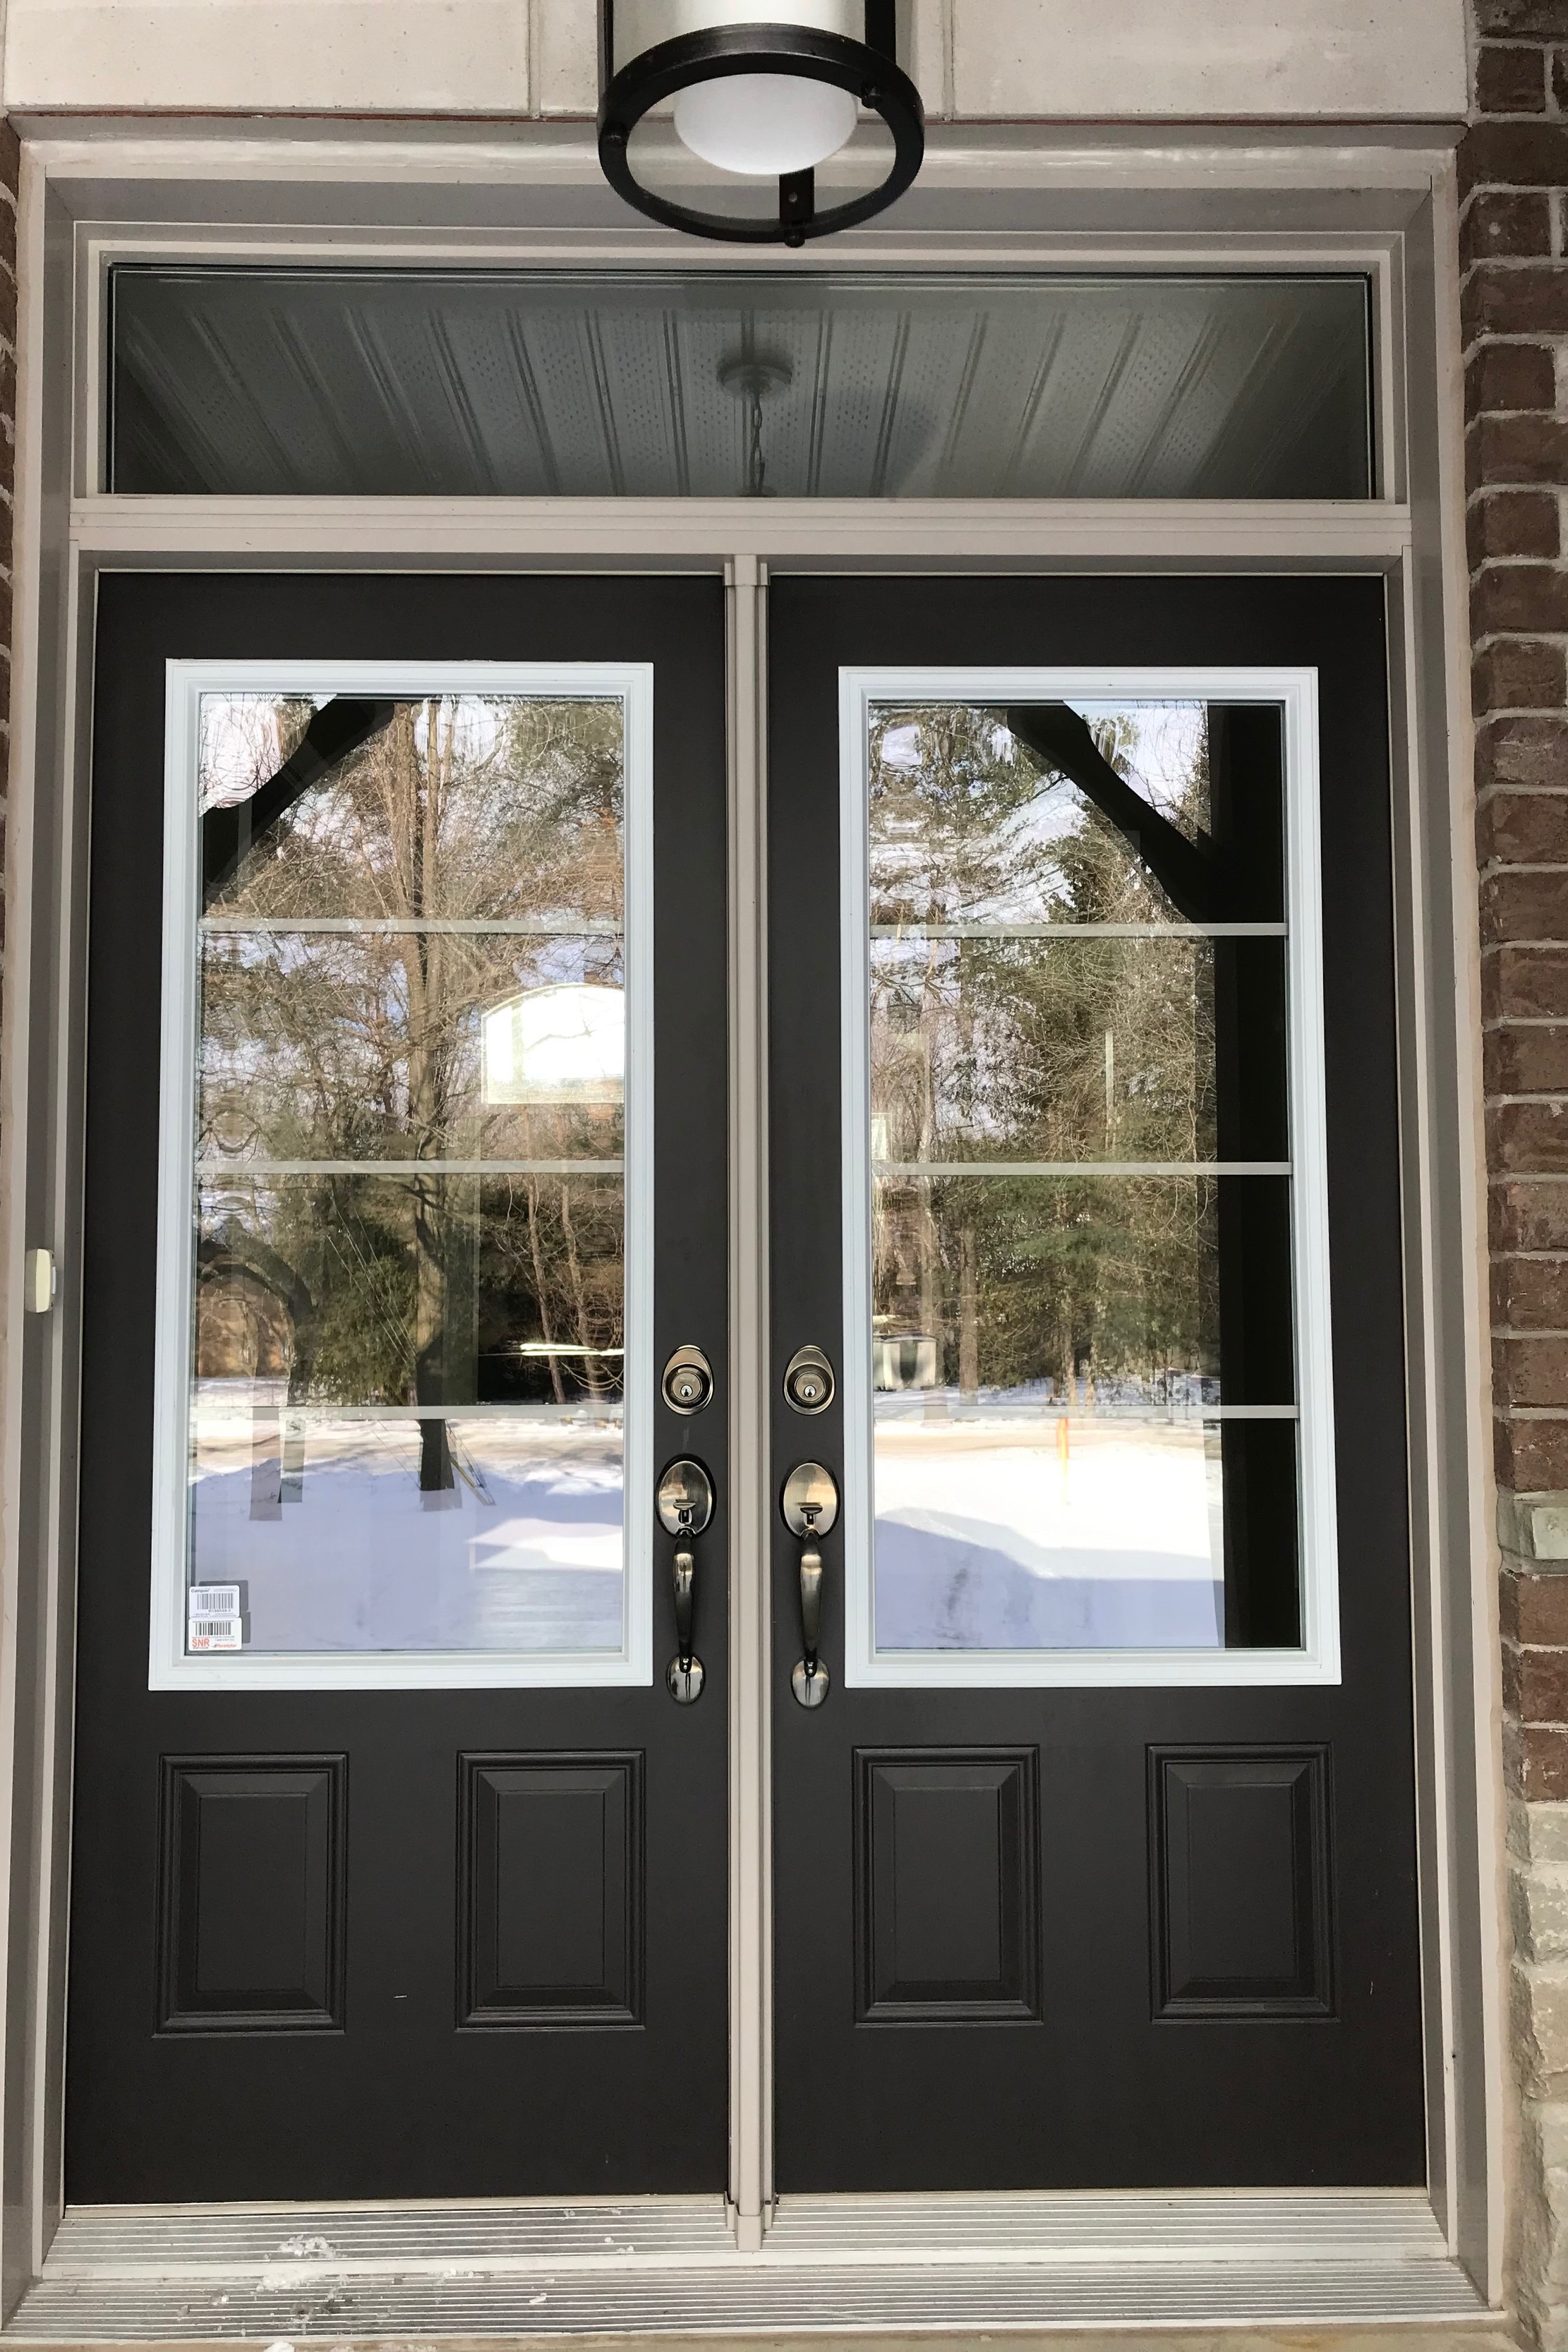 All exterior man door frames are finished in vinyl to match your windows. Front Entry doors with Grip Sets. 3/4 height glazing to doors. - No more exterior man door frames to paint!